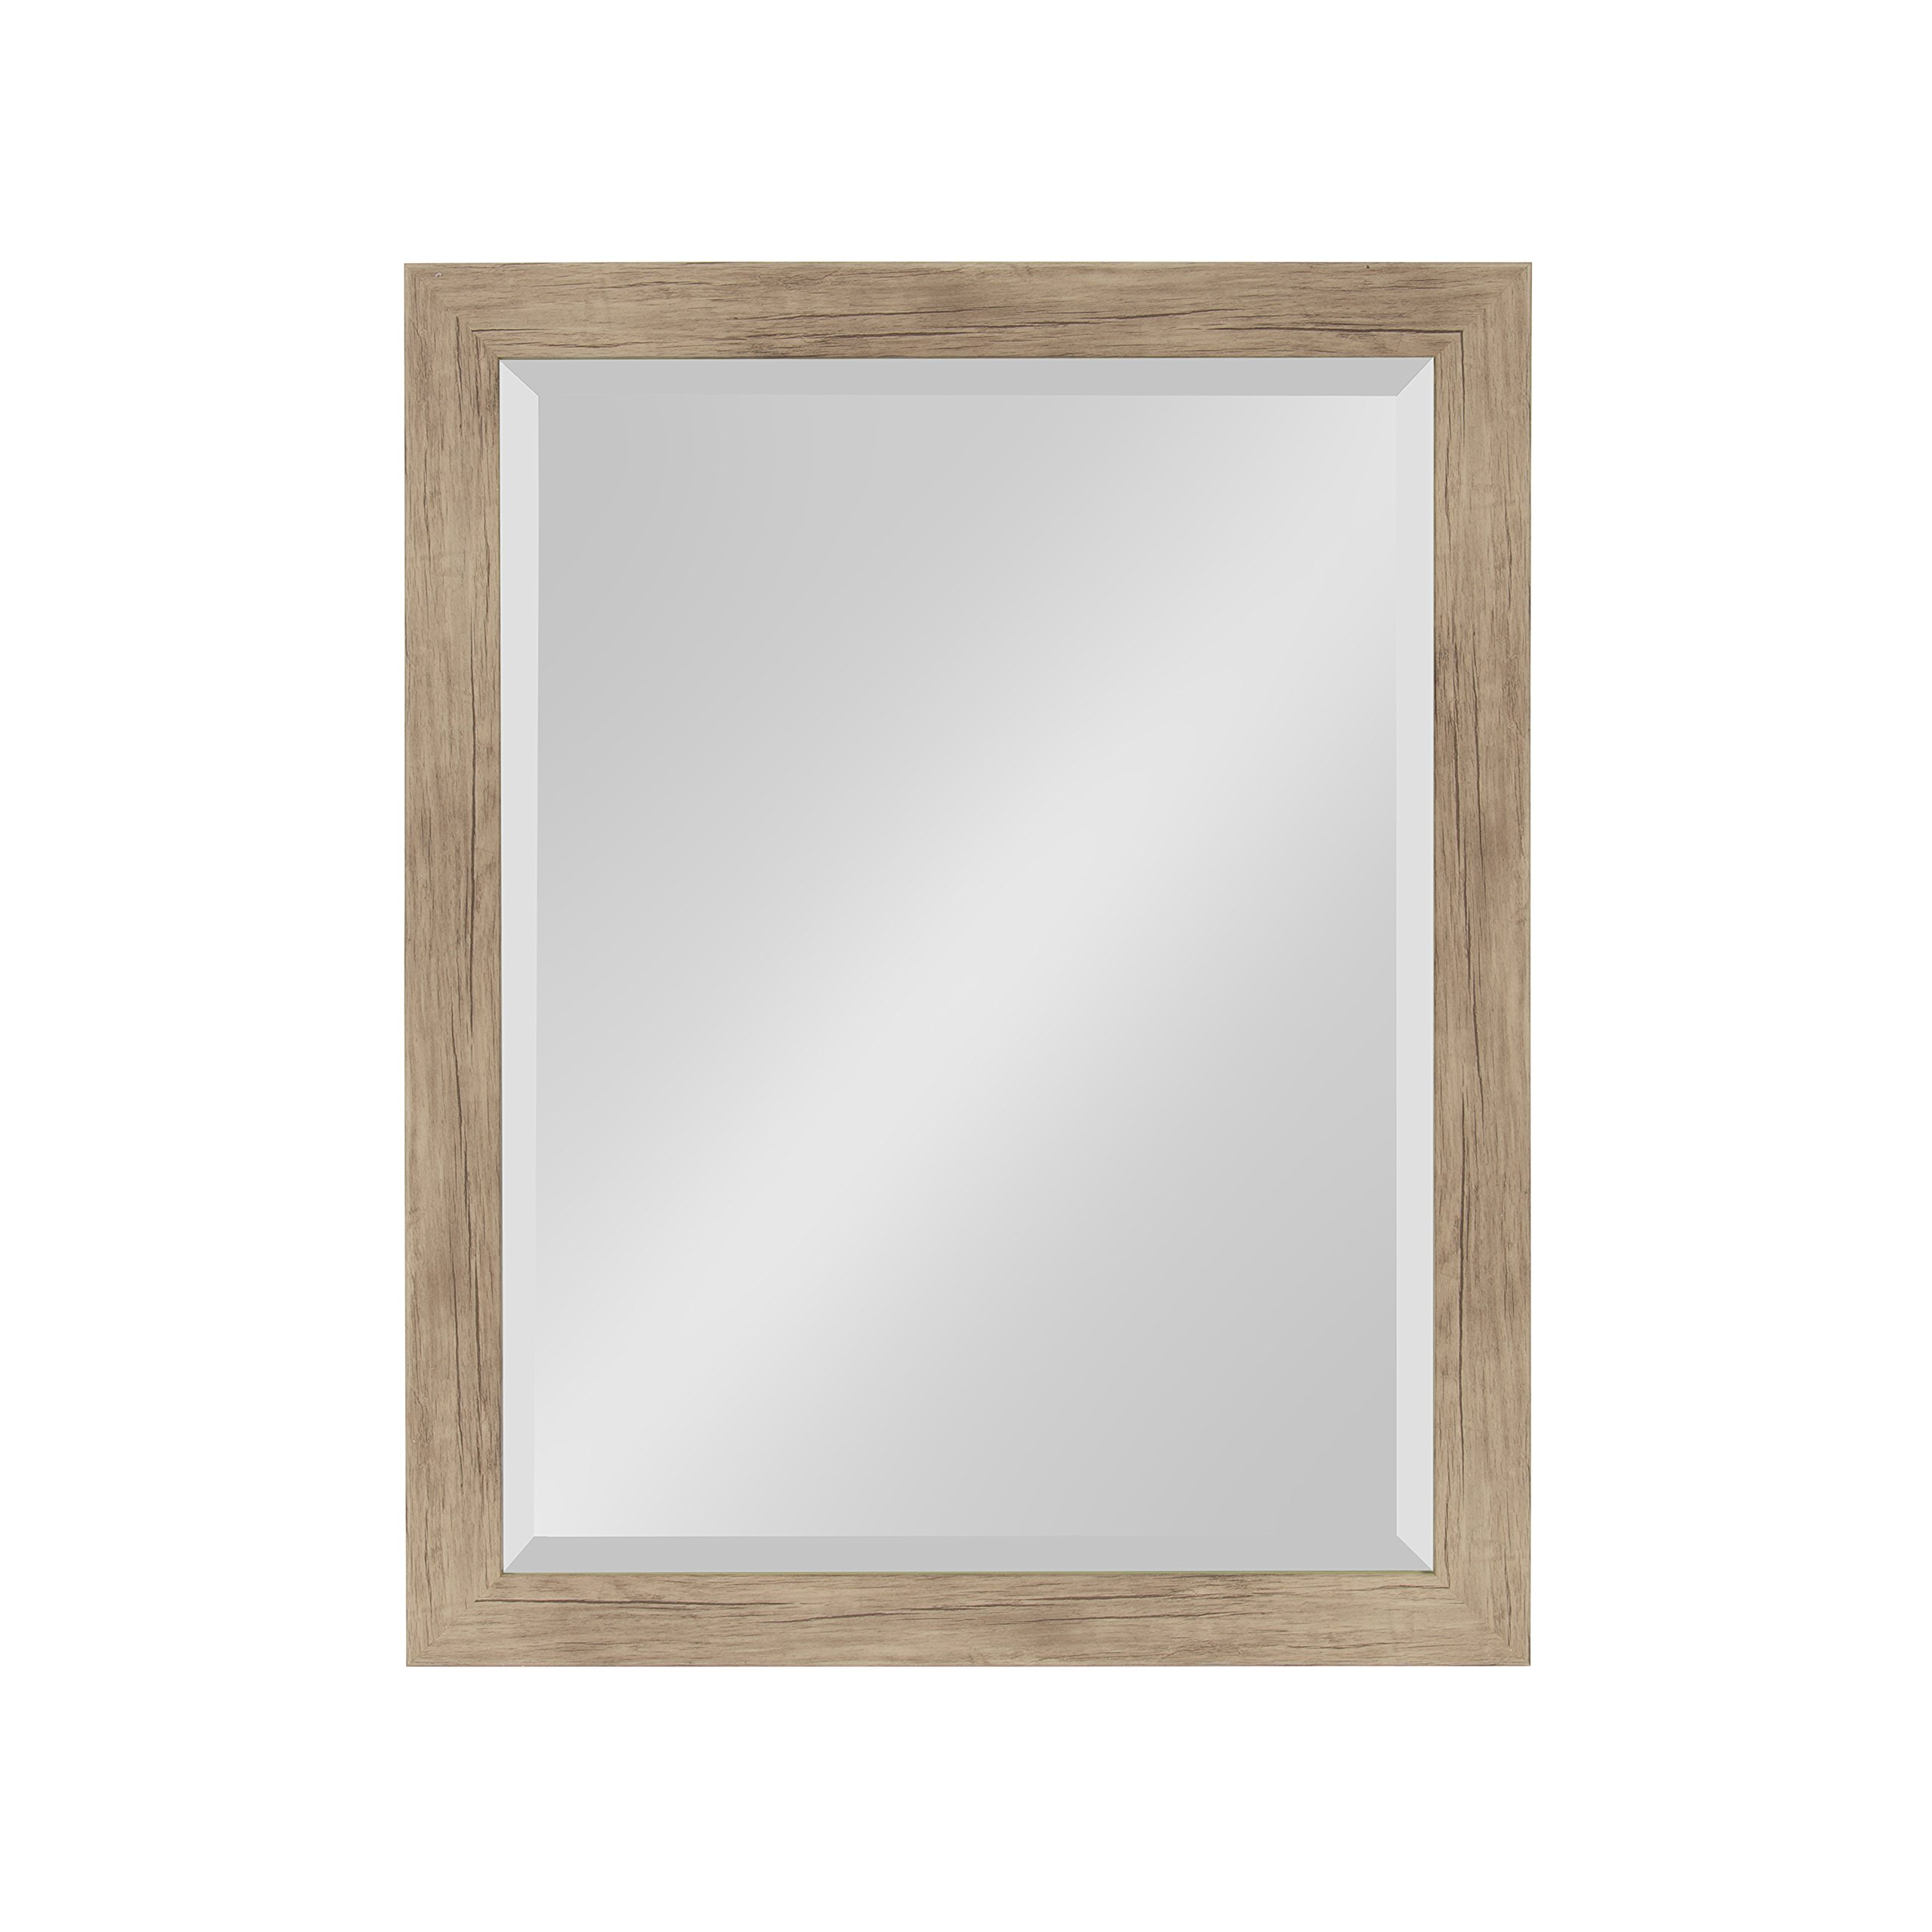 DesignOvation Beatrice Framed Decorative Rectangle Wall Mirror, 21 x 27, Rustic Brown